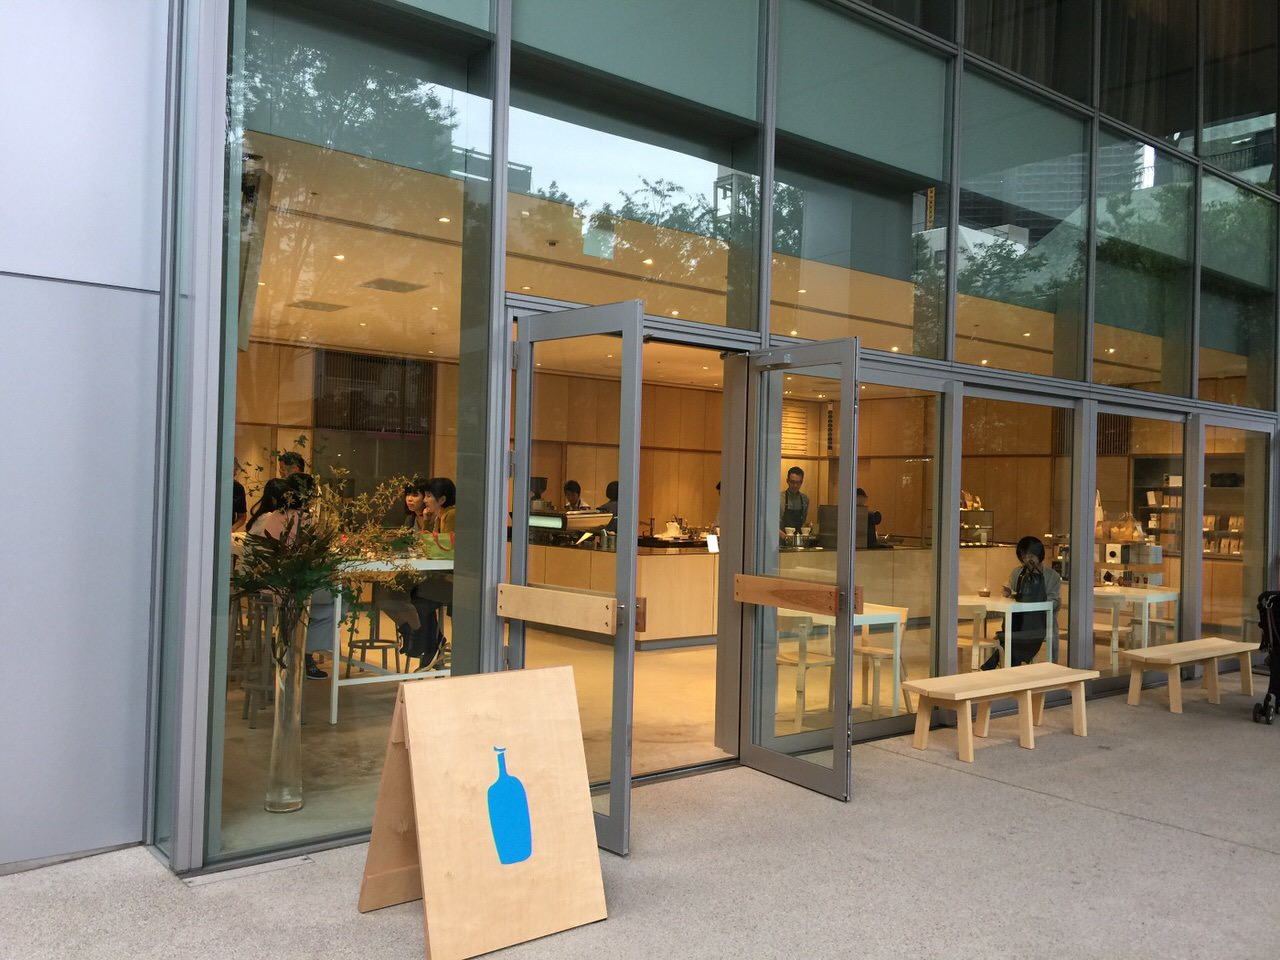 Blue bottle roppongi 8640